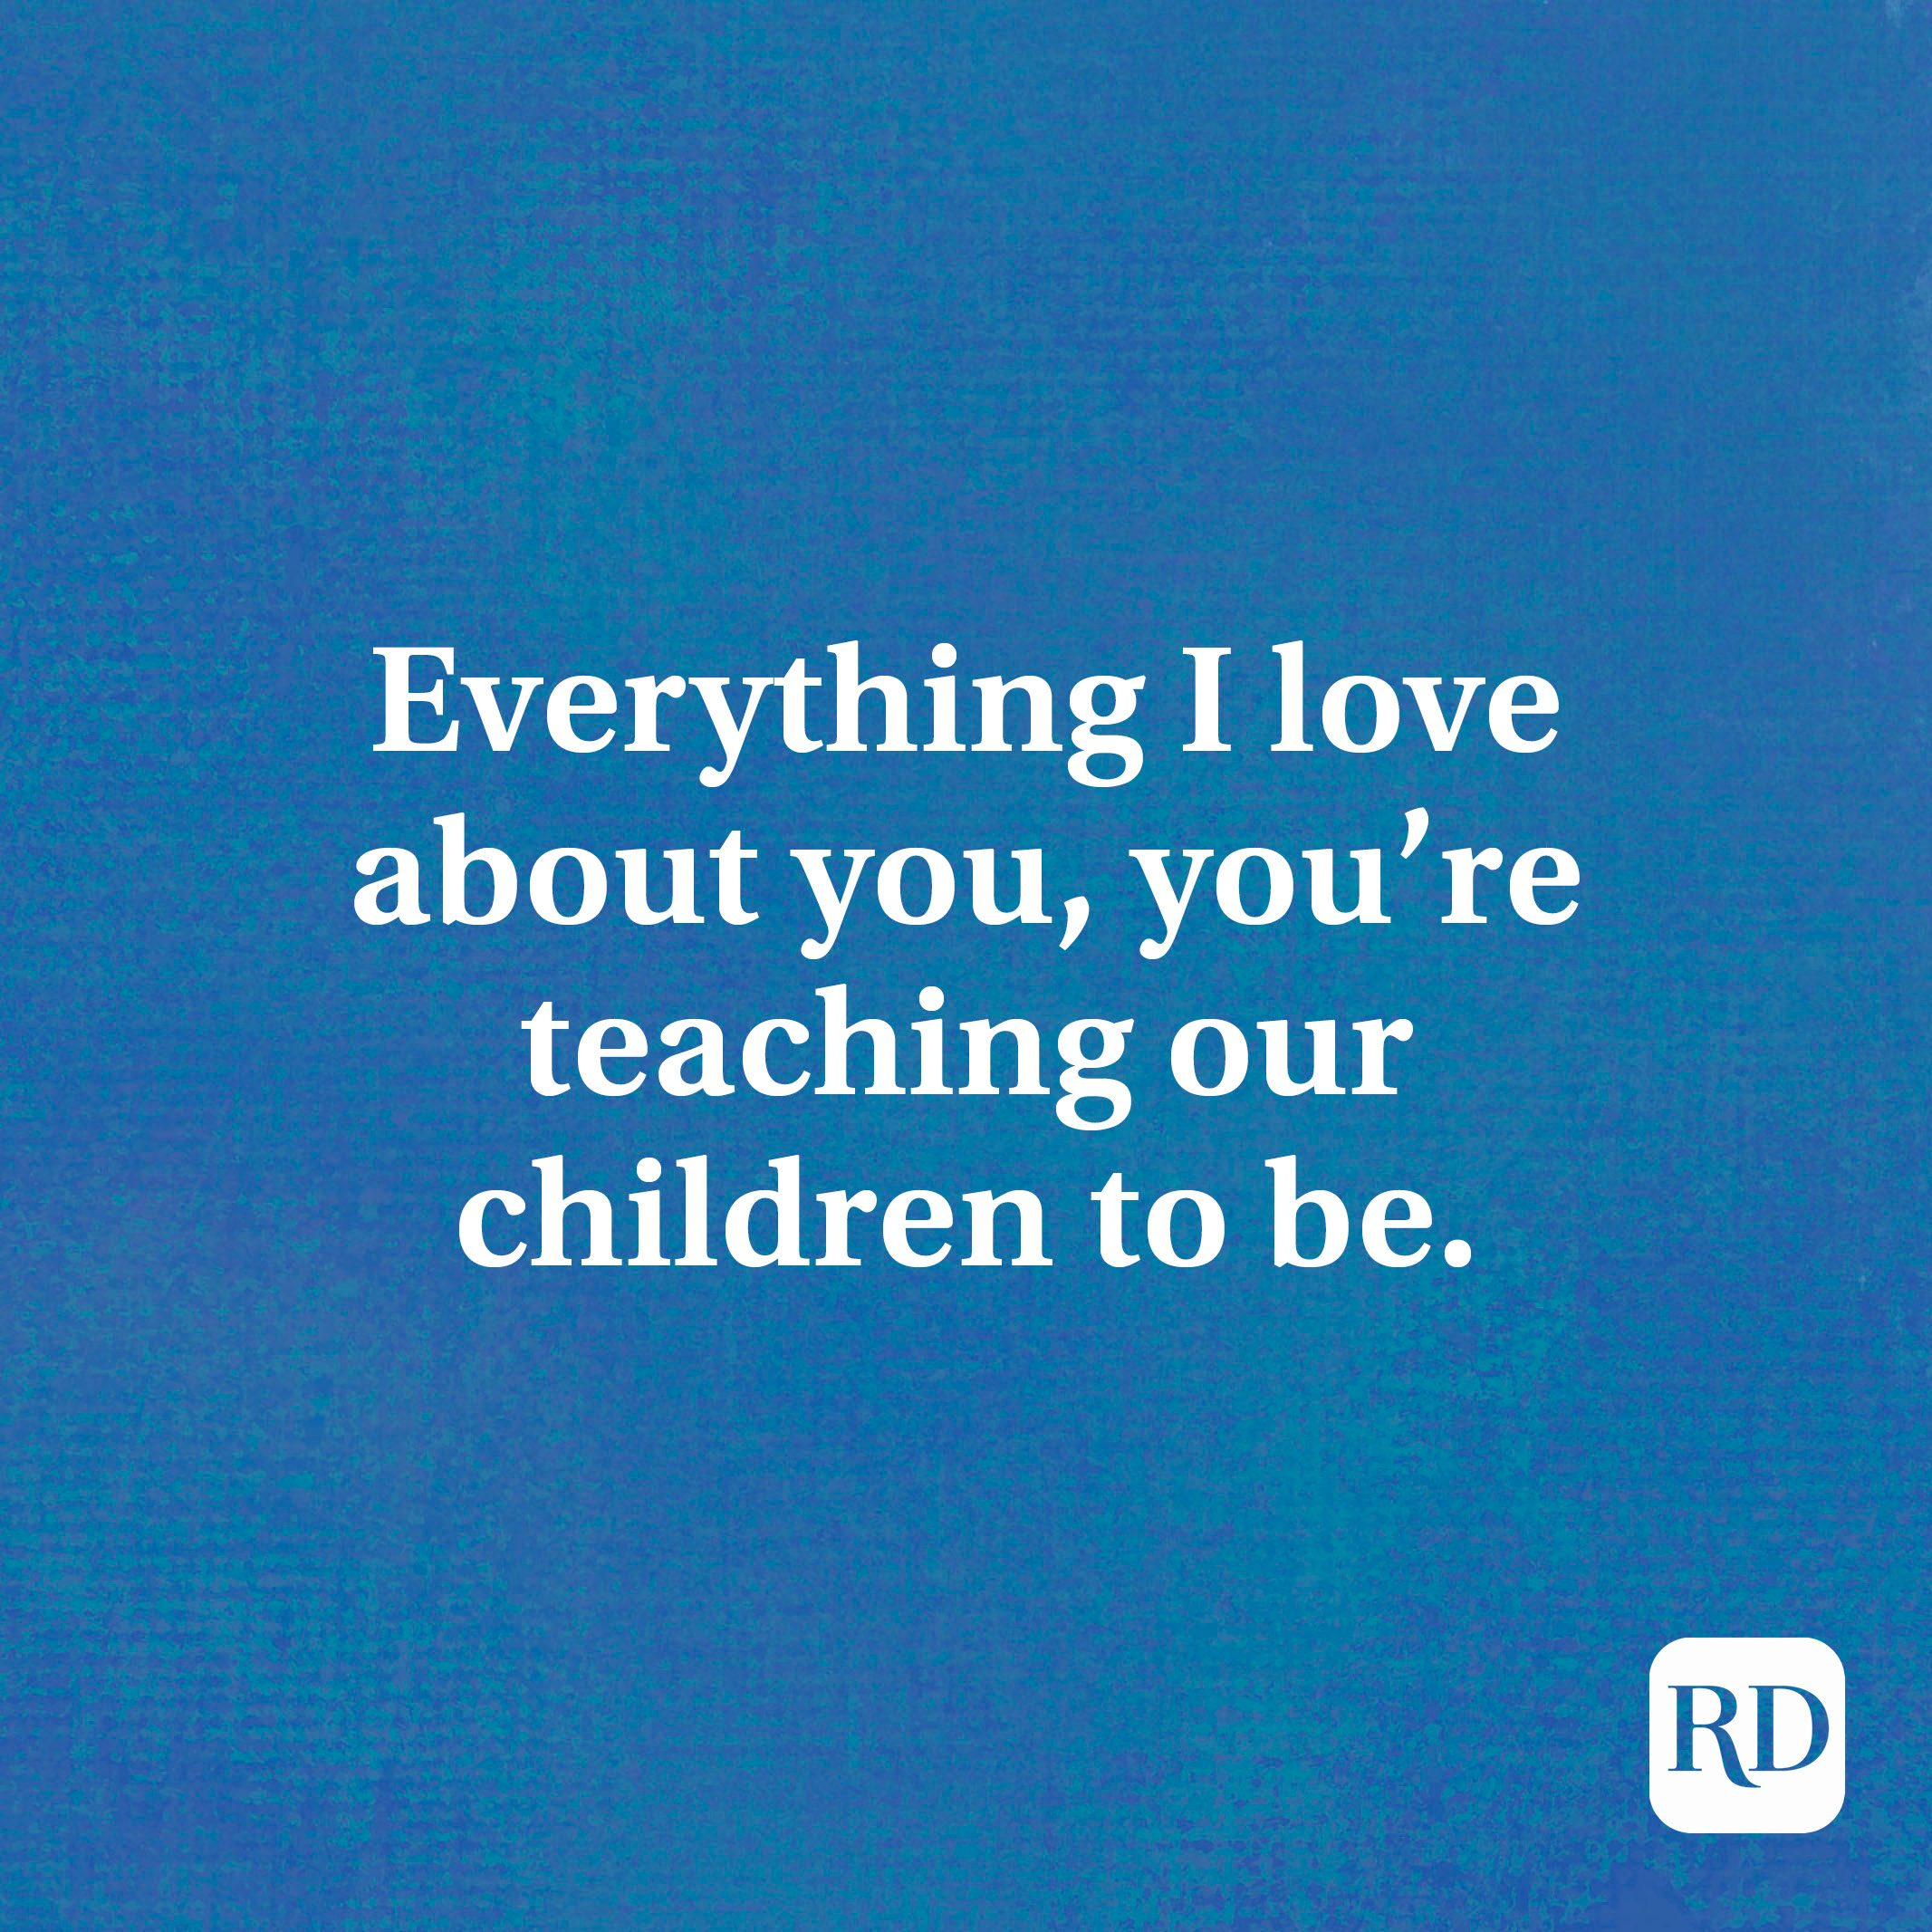 Everything I love about you, you're teaching our children to be.